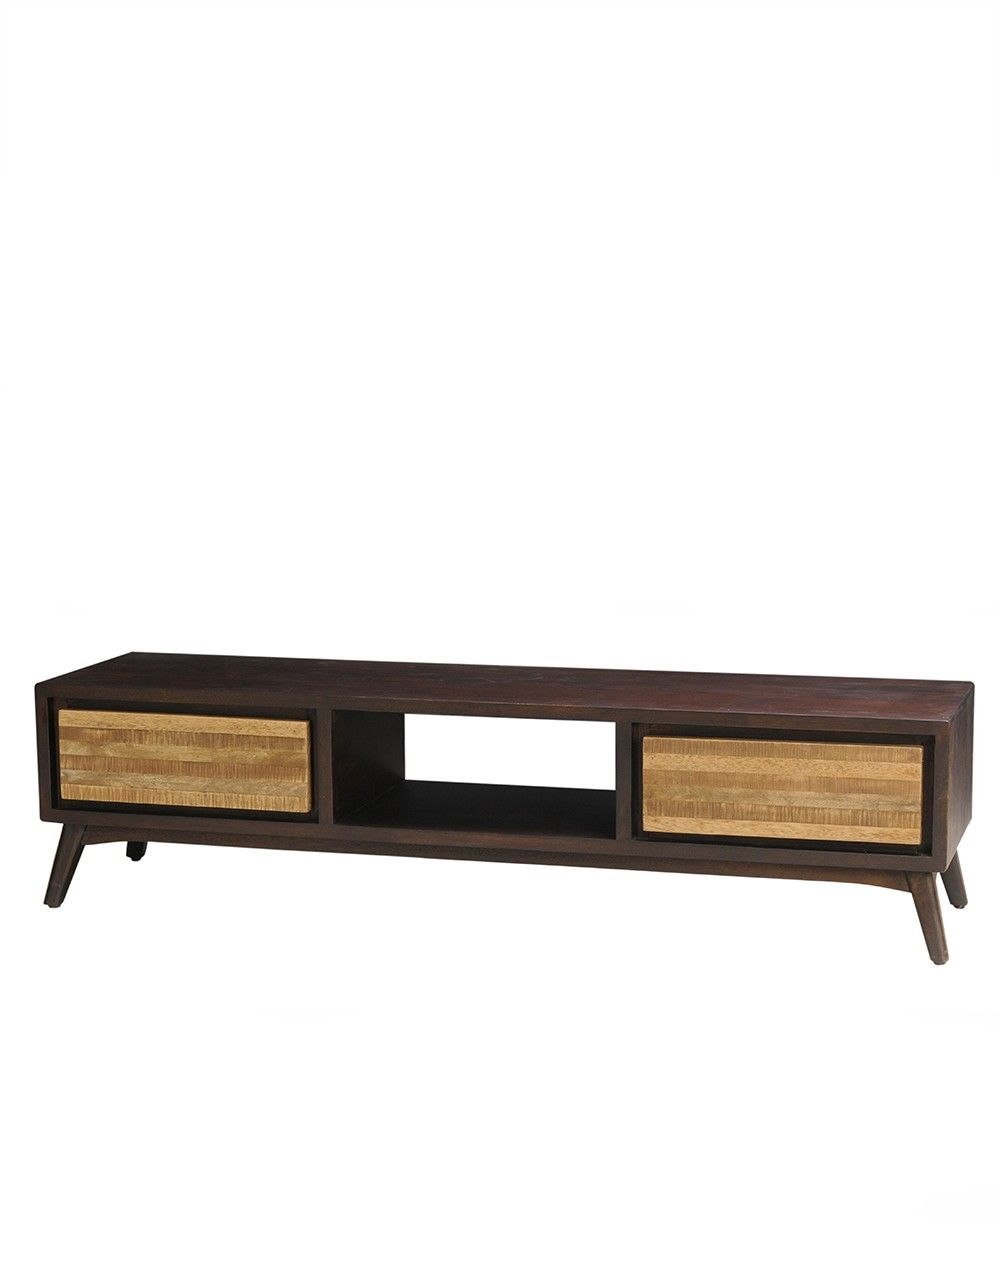 Indian Style Coffee Table Single Futon Fab India Pinterest Bedrooms Futons And Furniture